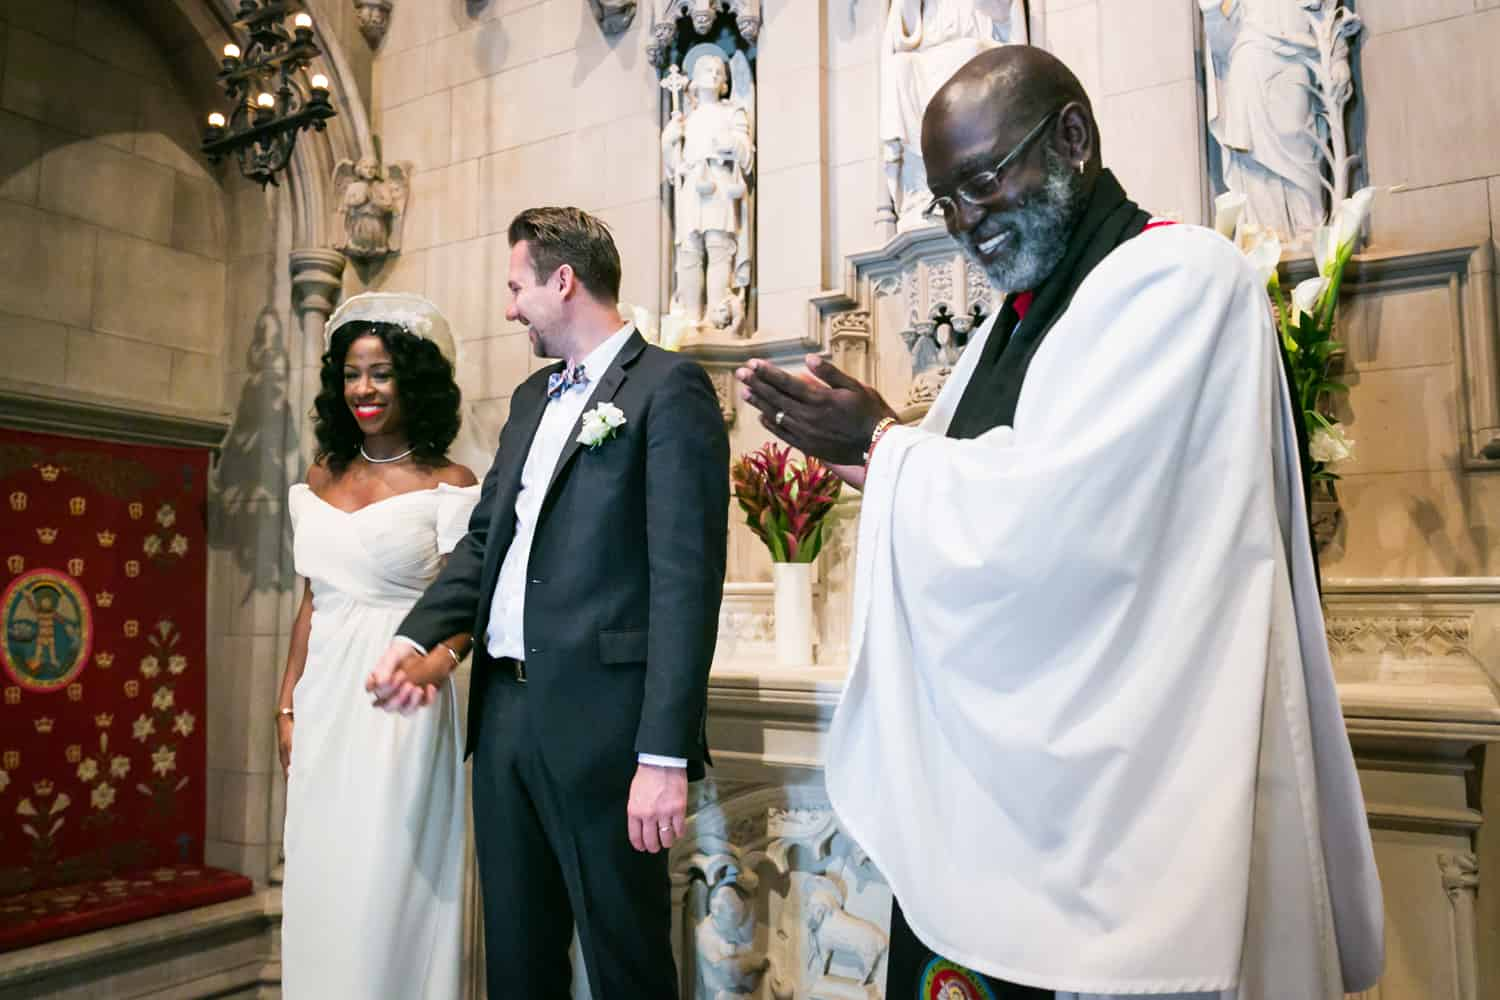 Priest clapping for bride and groom during Trinity Church wedding ceremony